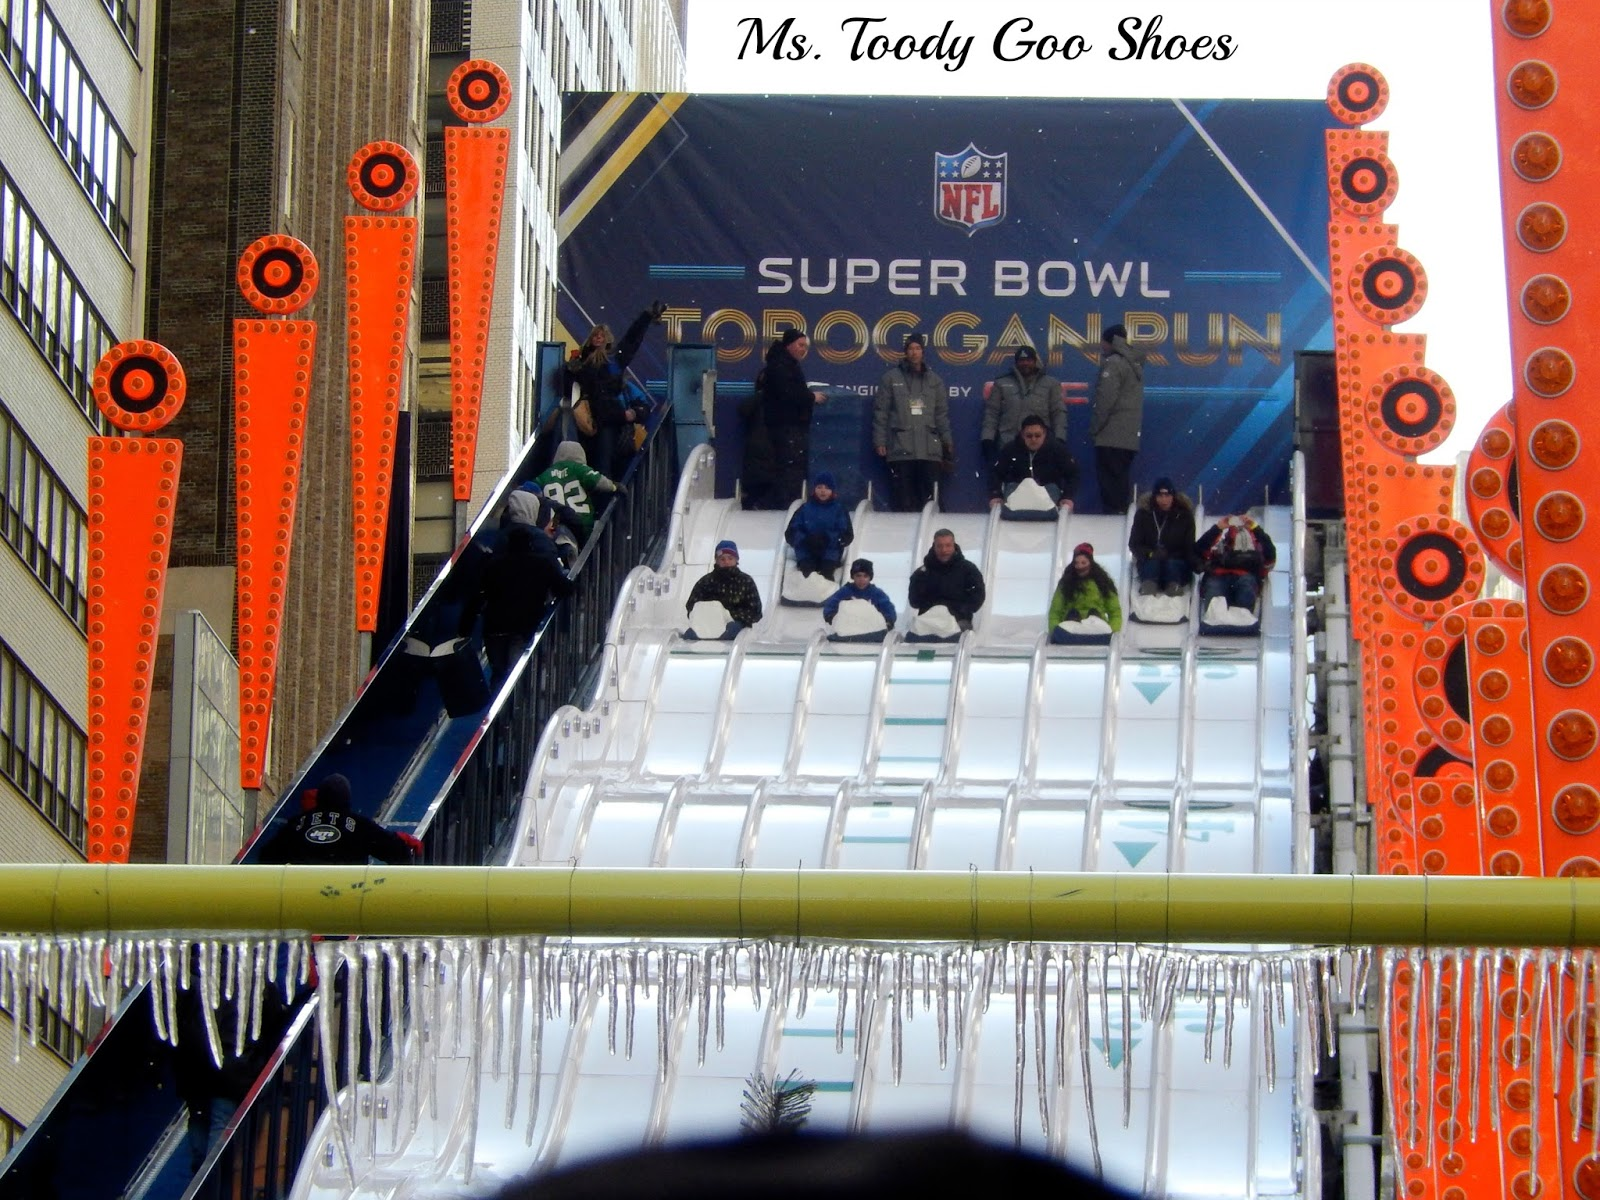 A Walk Down Super Bowl Boulevard in New York City ---by Ms. Toody Goo Shoes